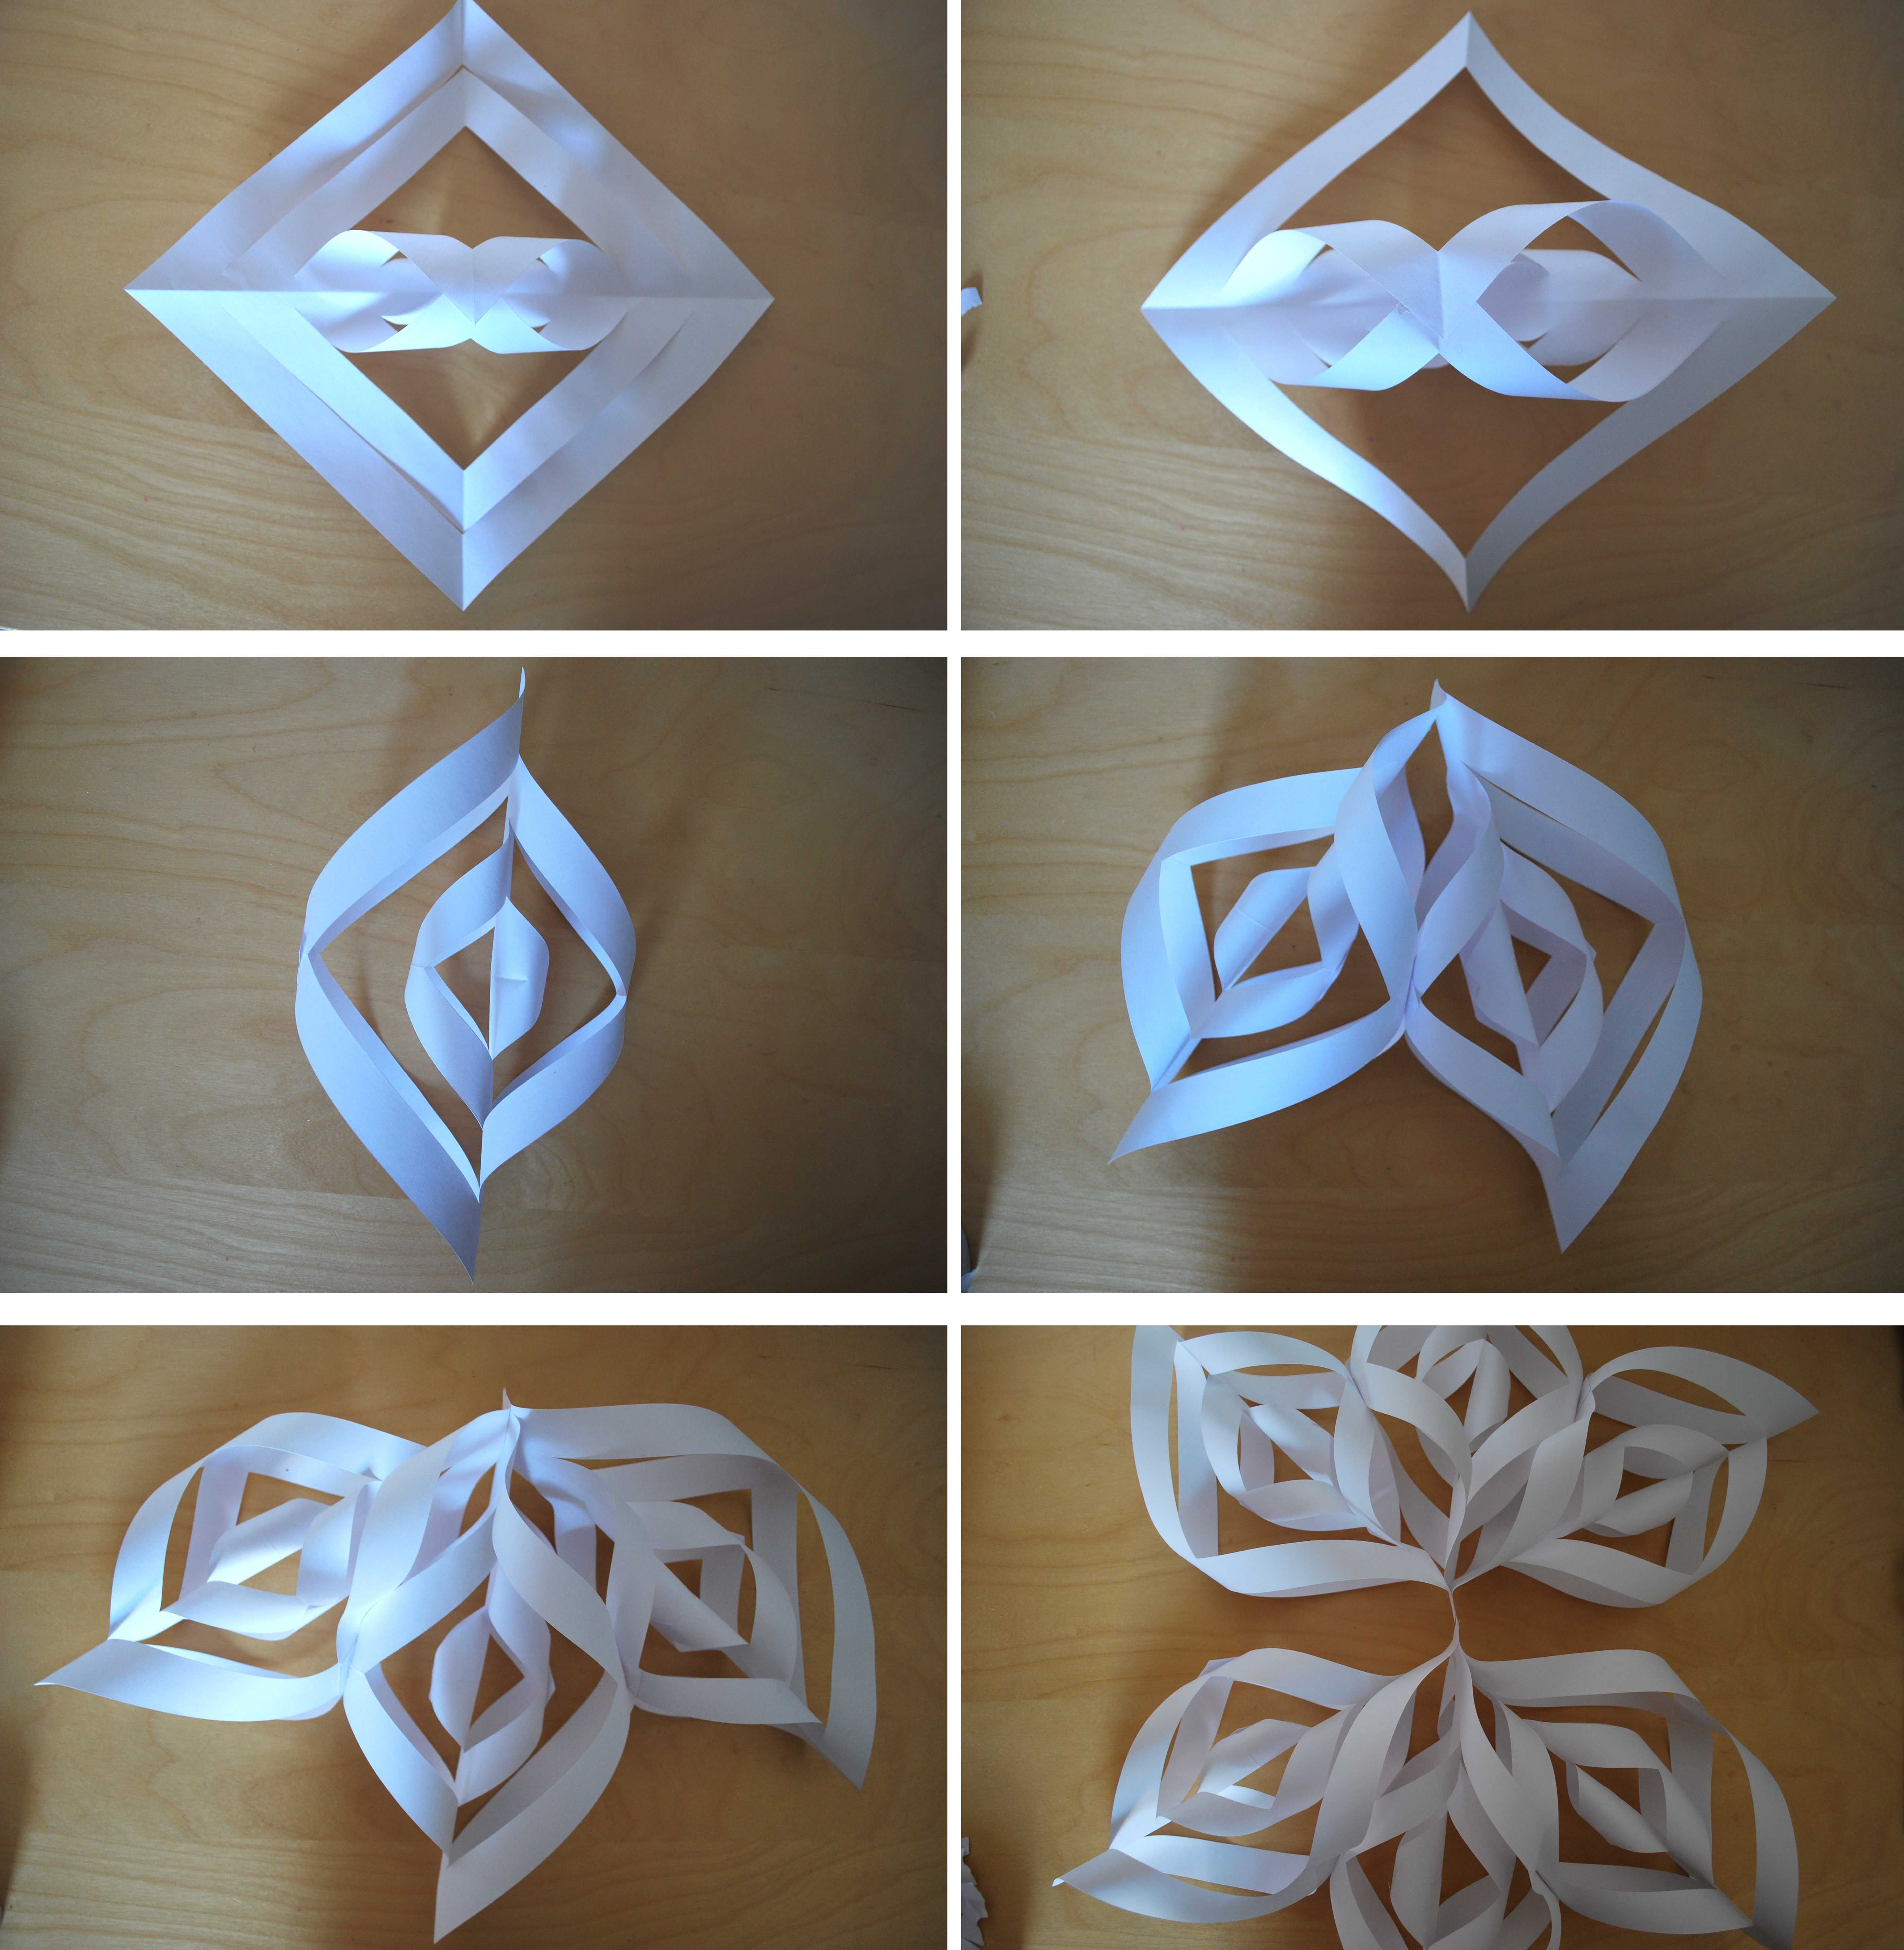 Part 3 how to snowflakes 3d i love paper snowflakes for Diy paper snowflakes 3d